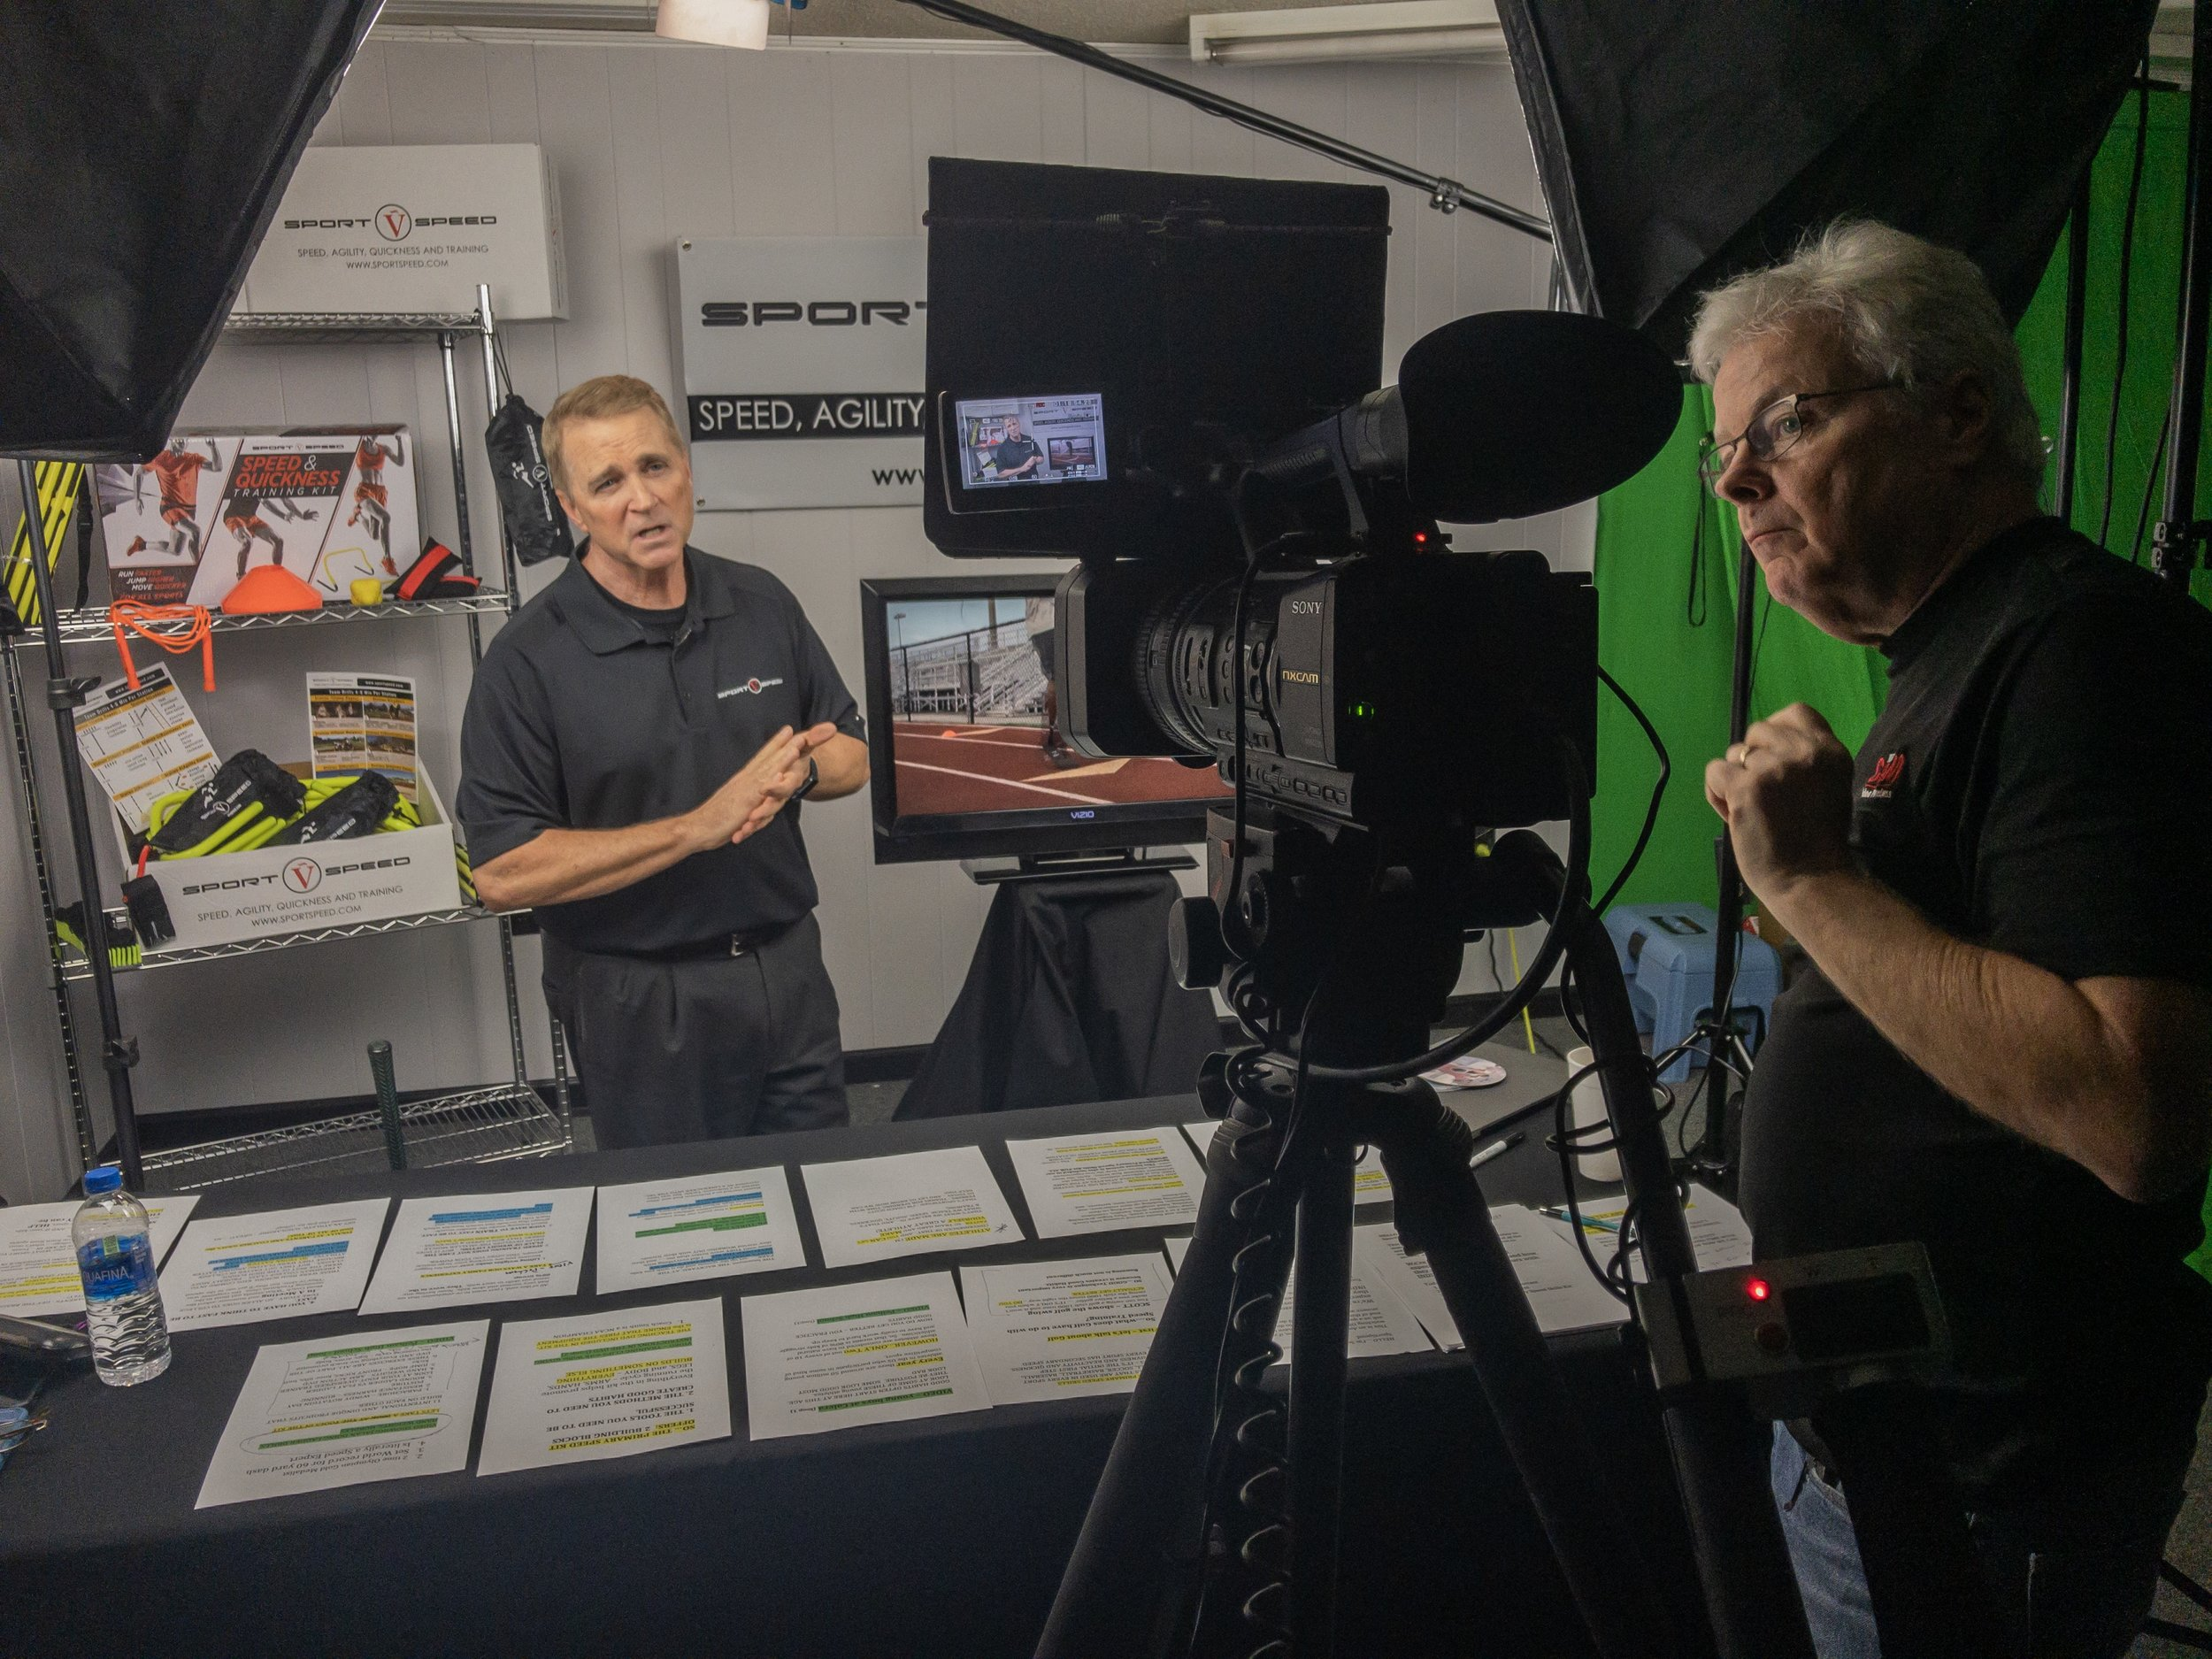 Training Videos - Training videos are essential for your employees to learn the proper way to work. We have team member specializing in corporate training videos. Let us help you help you team!